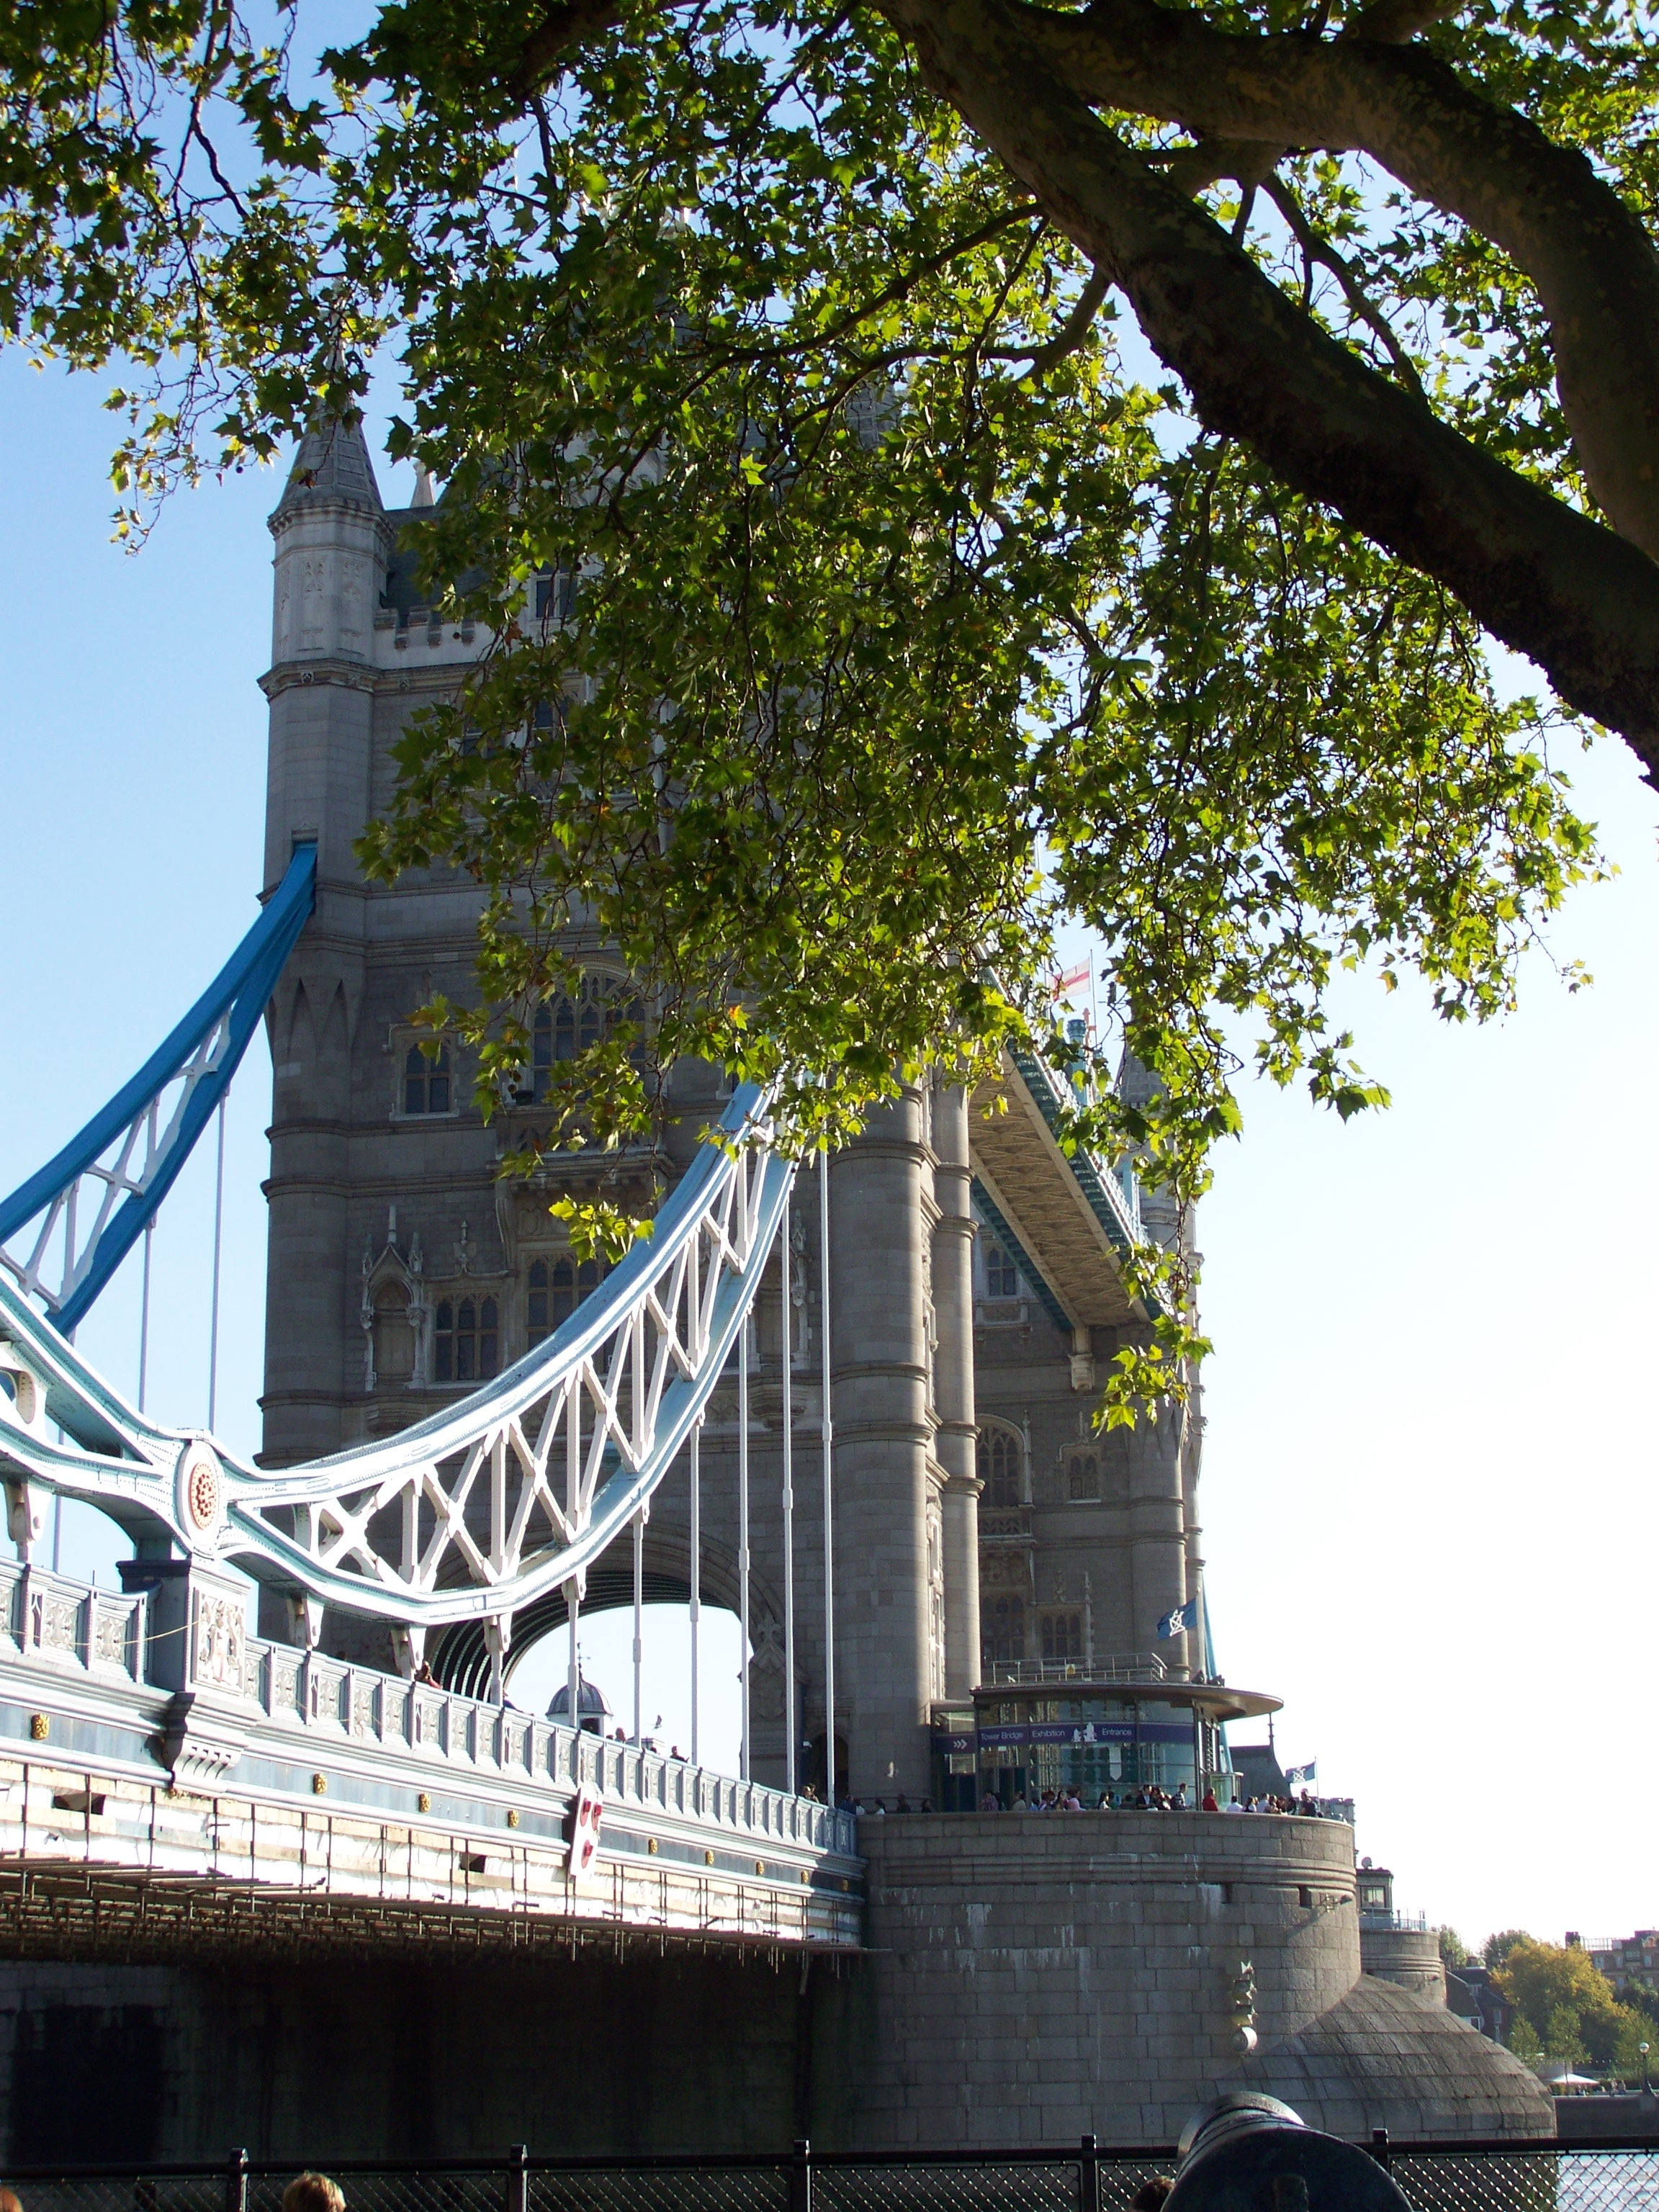 Monumento en Tower Bridge